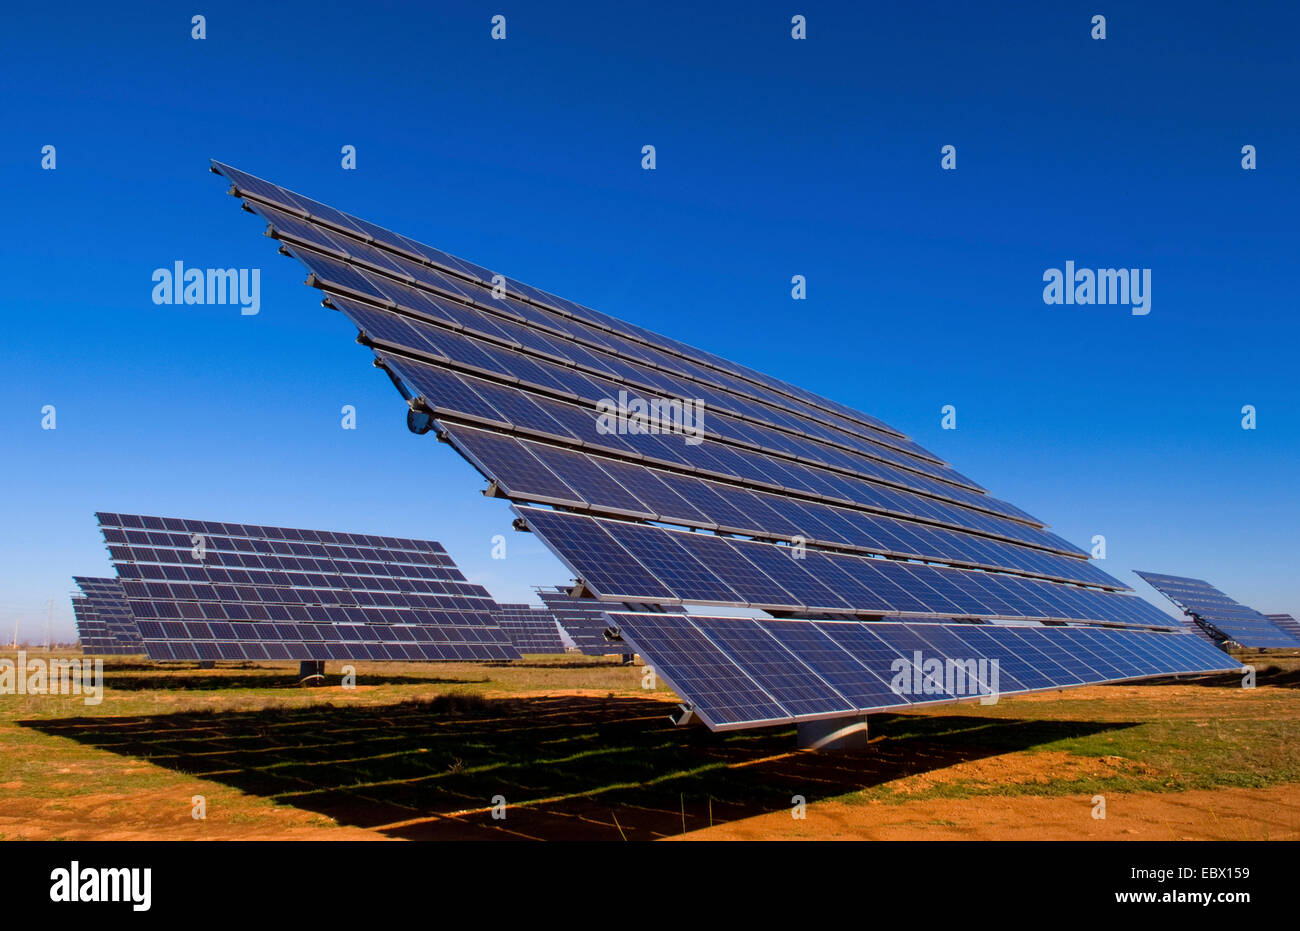 solar panels to store electricity and power near Mananares, Spain